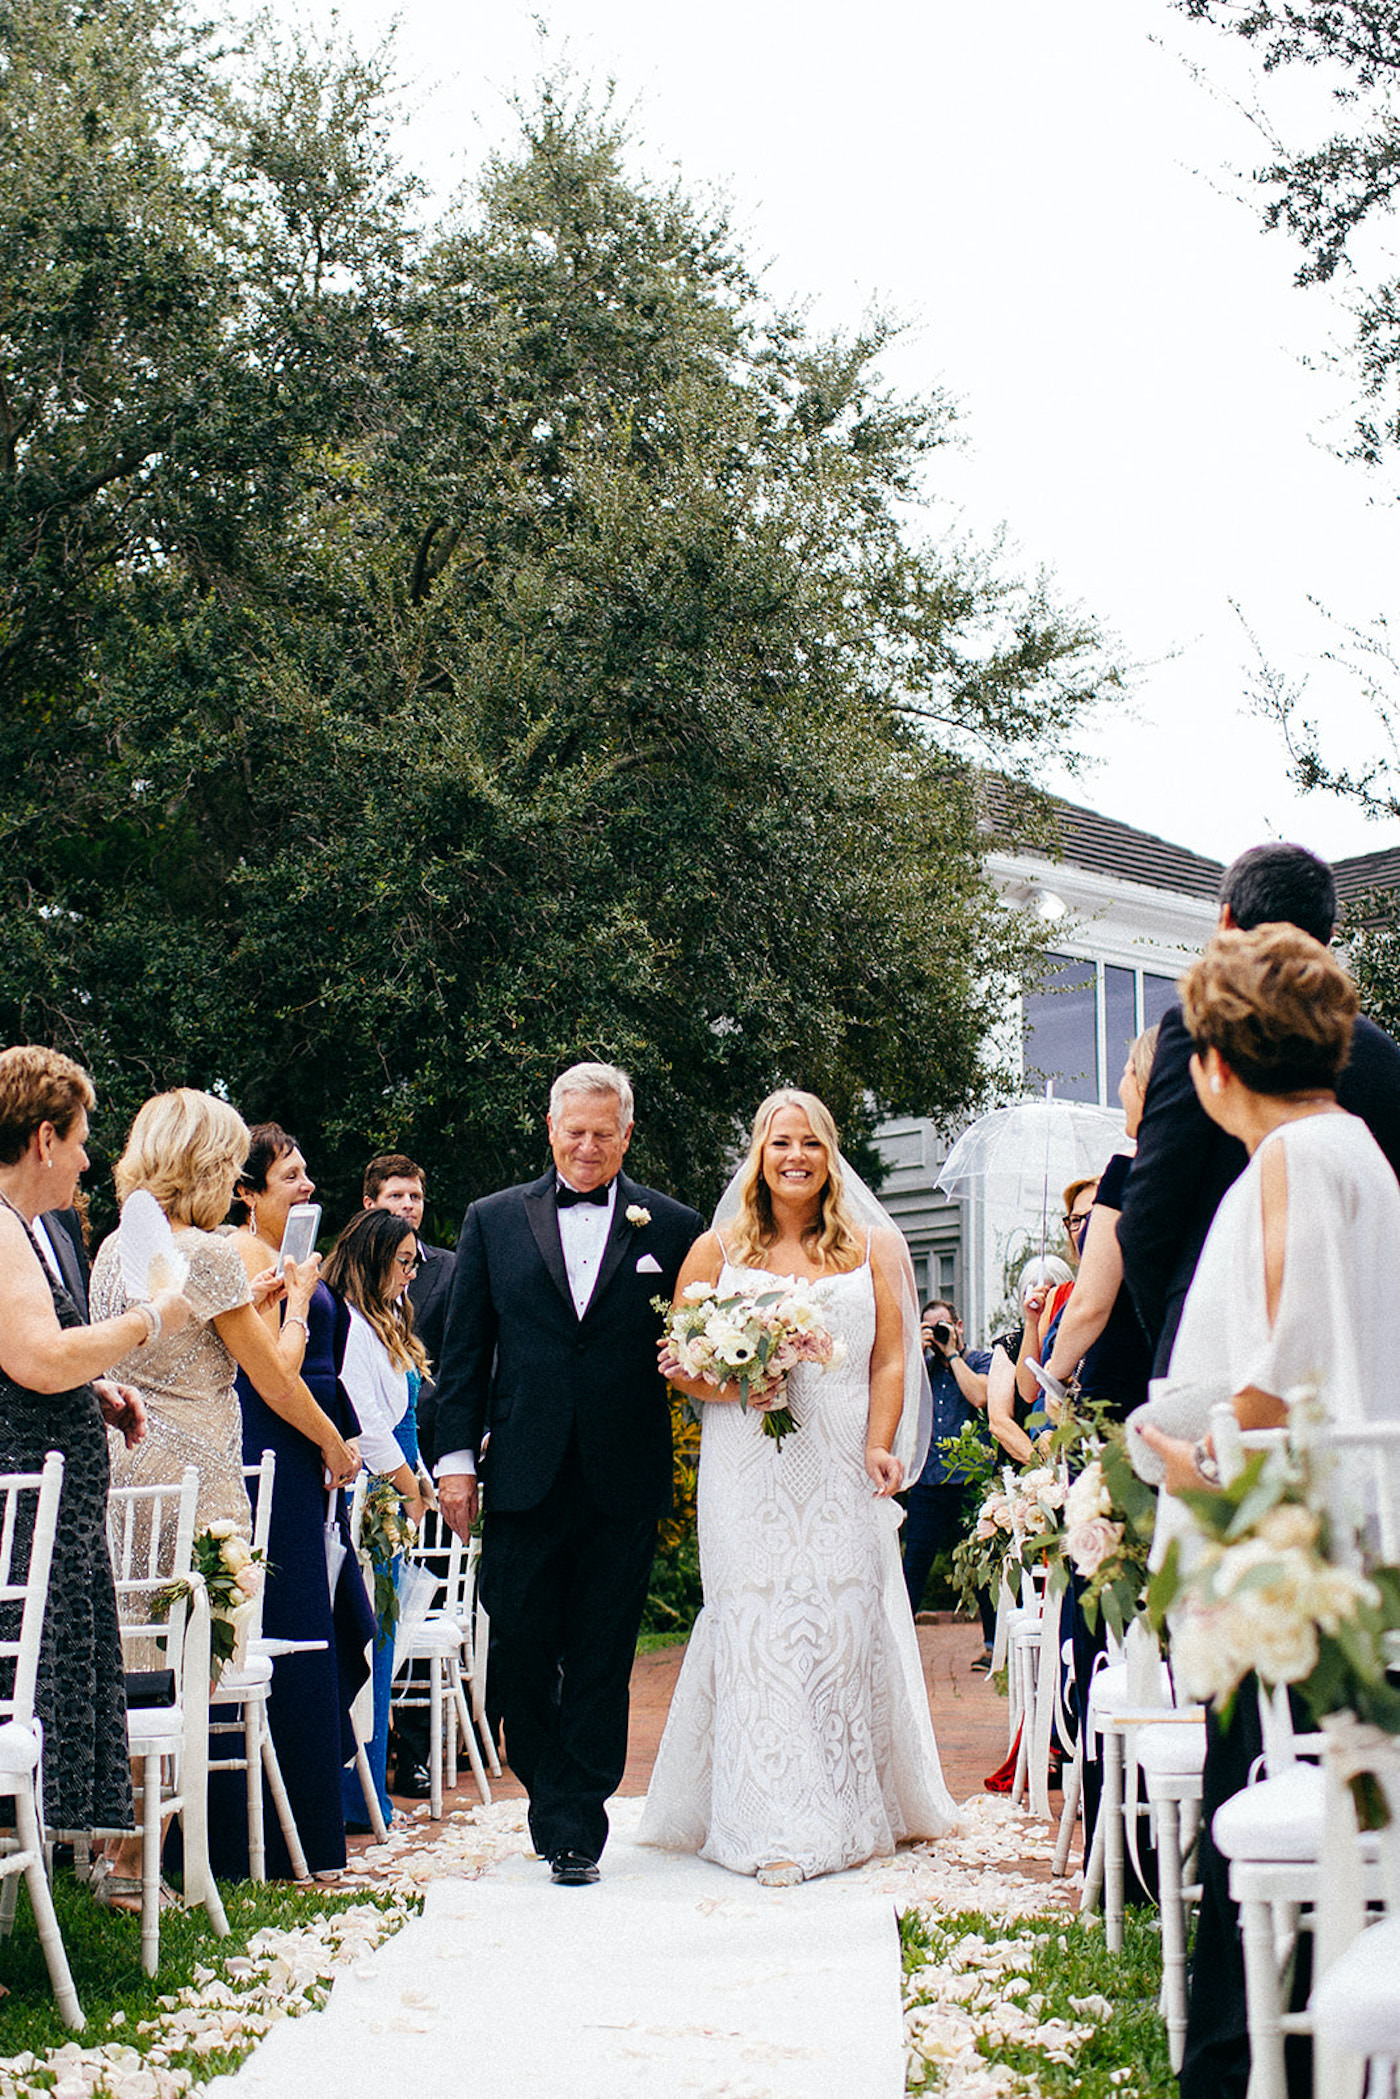 Florida Bride and Father Walk Down the Aisle During Wedding Processional, Bride Wearing Hayley Paige Wedding Dress, Walking on White Aisle Runner Decorated With Scattered Petals   Sarasota Wedding Planner NK Weddings